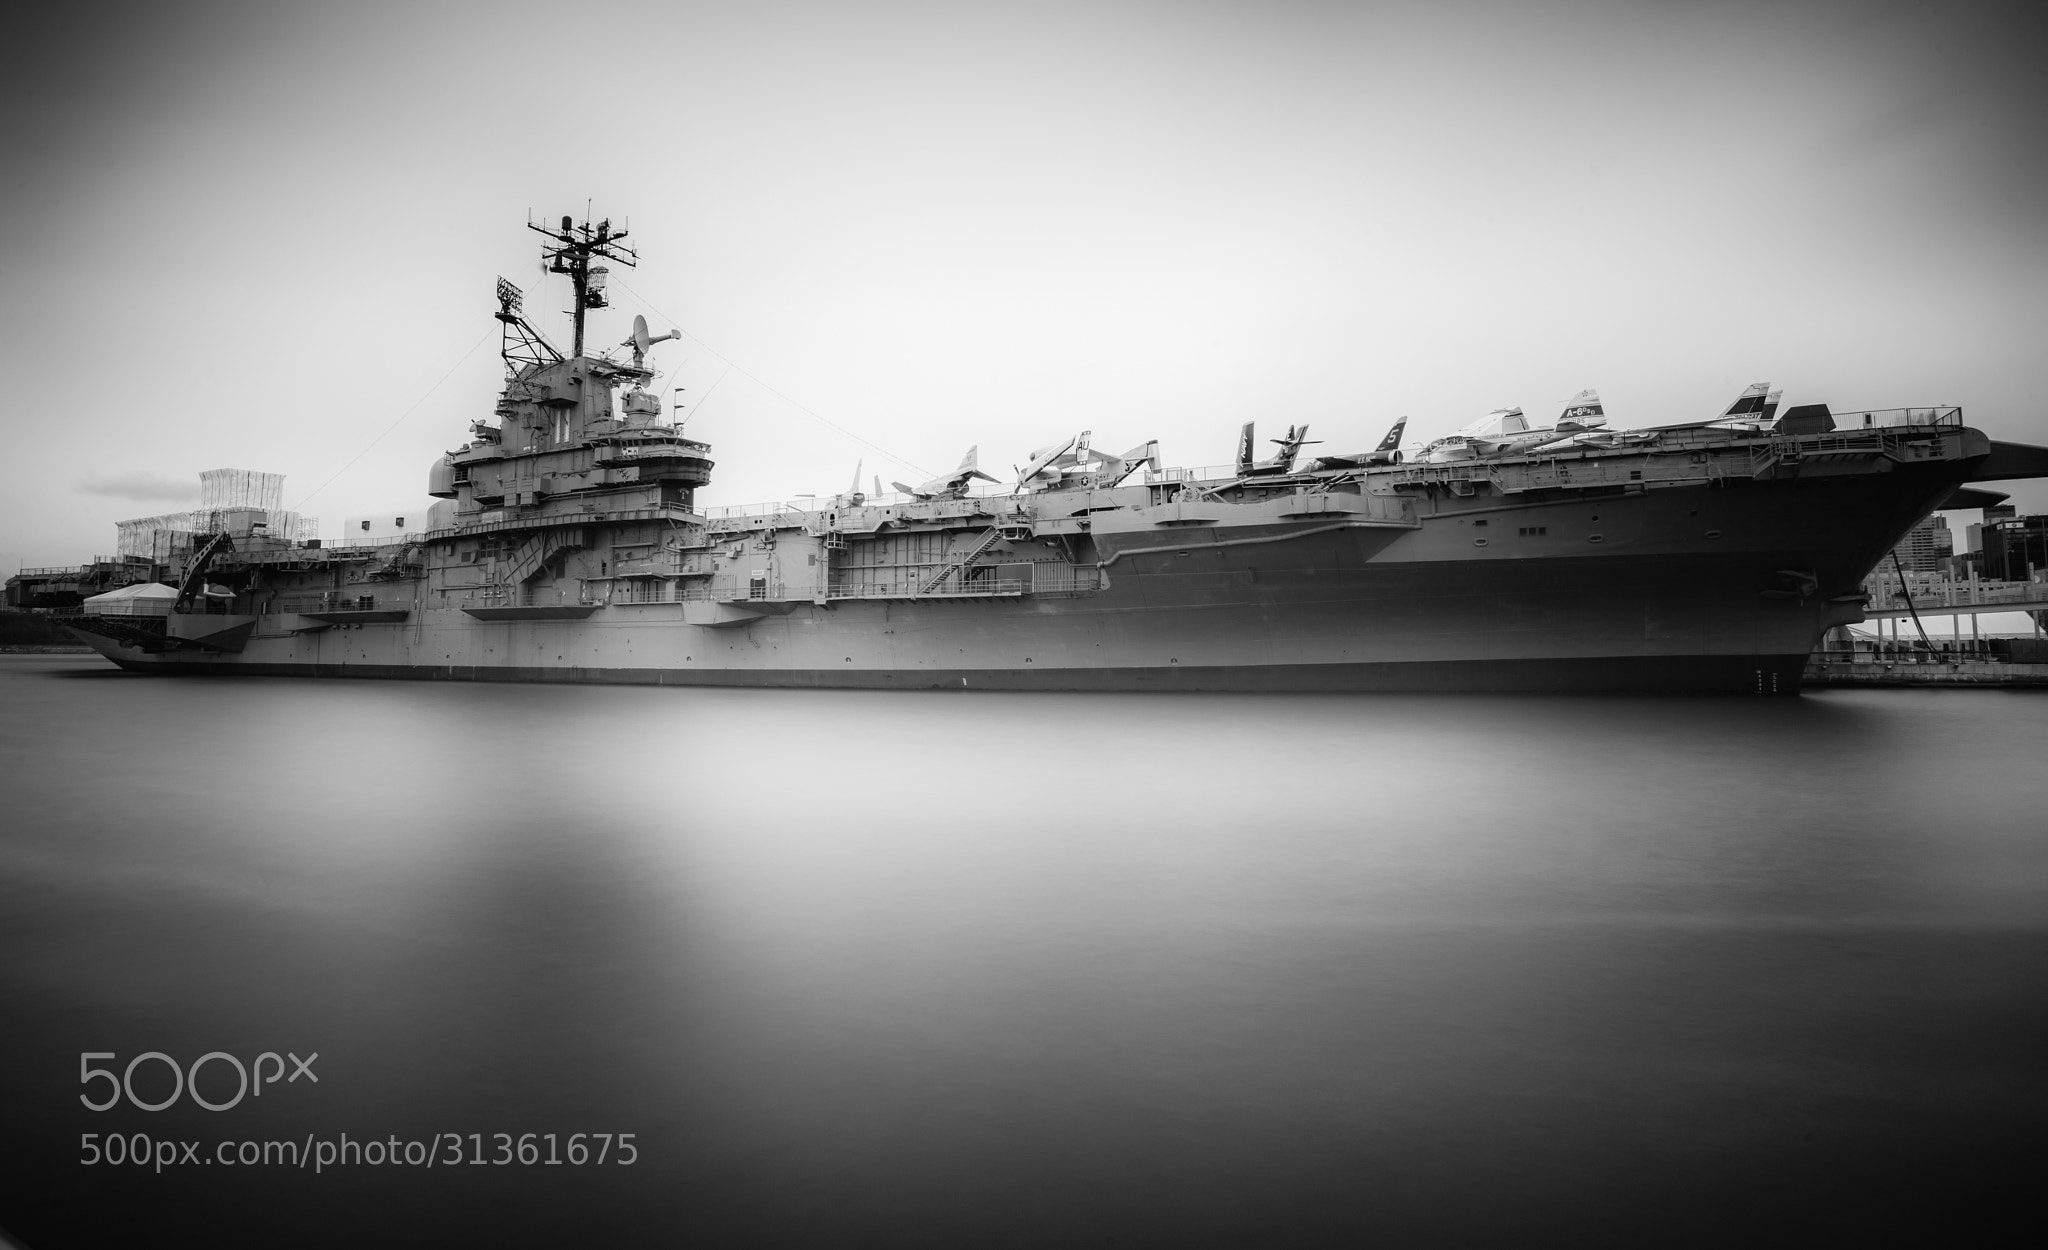 Photograph The Intrepid by Farouk Cherchali on 500px